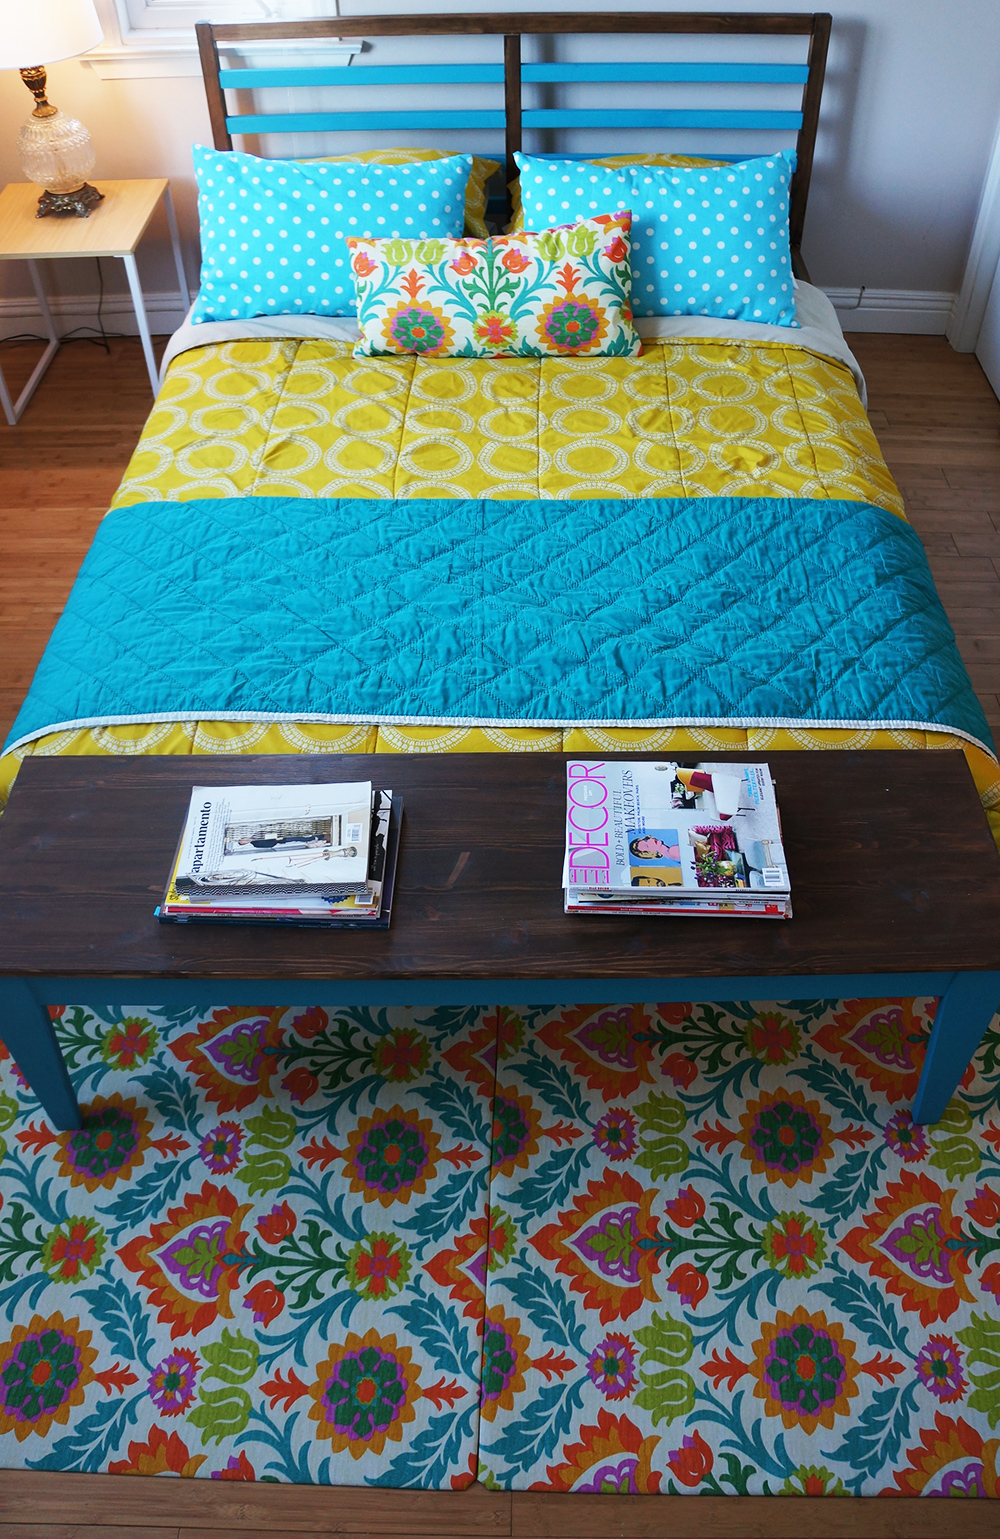 Diy Floor Rug Gives The Nuance Of Dream Decoration Homesfeed